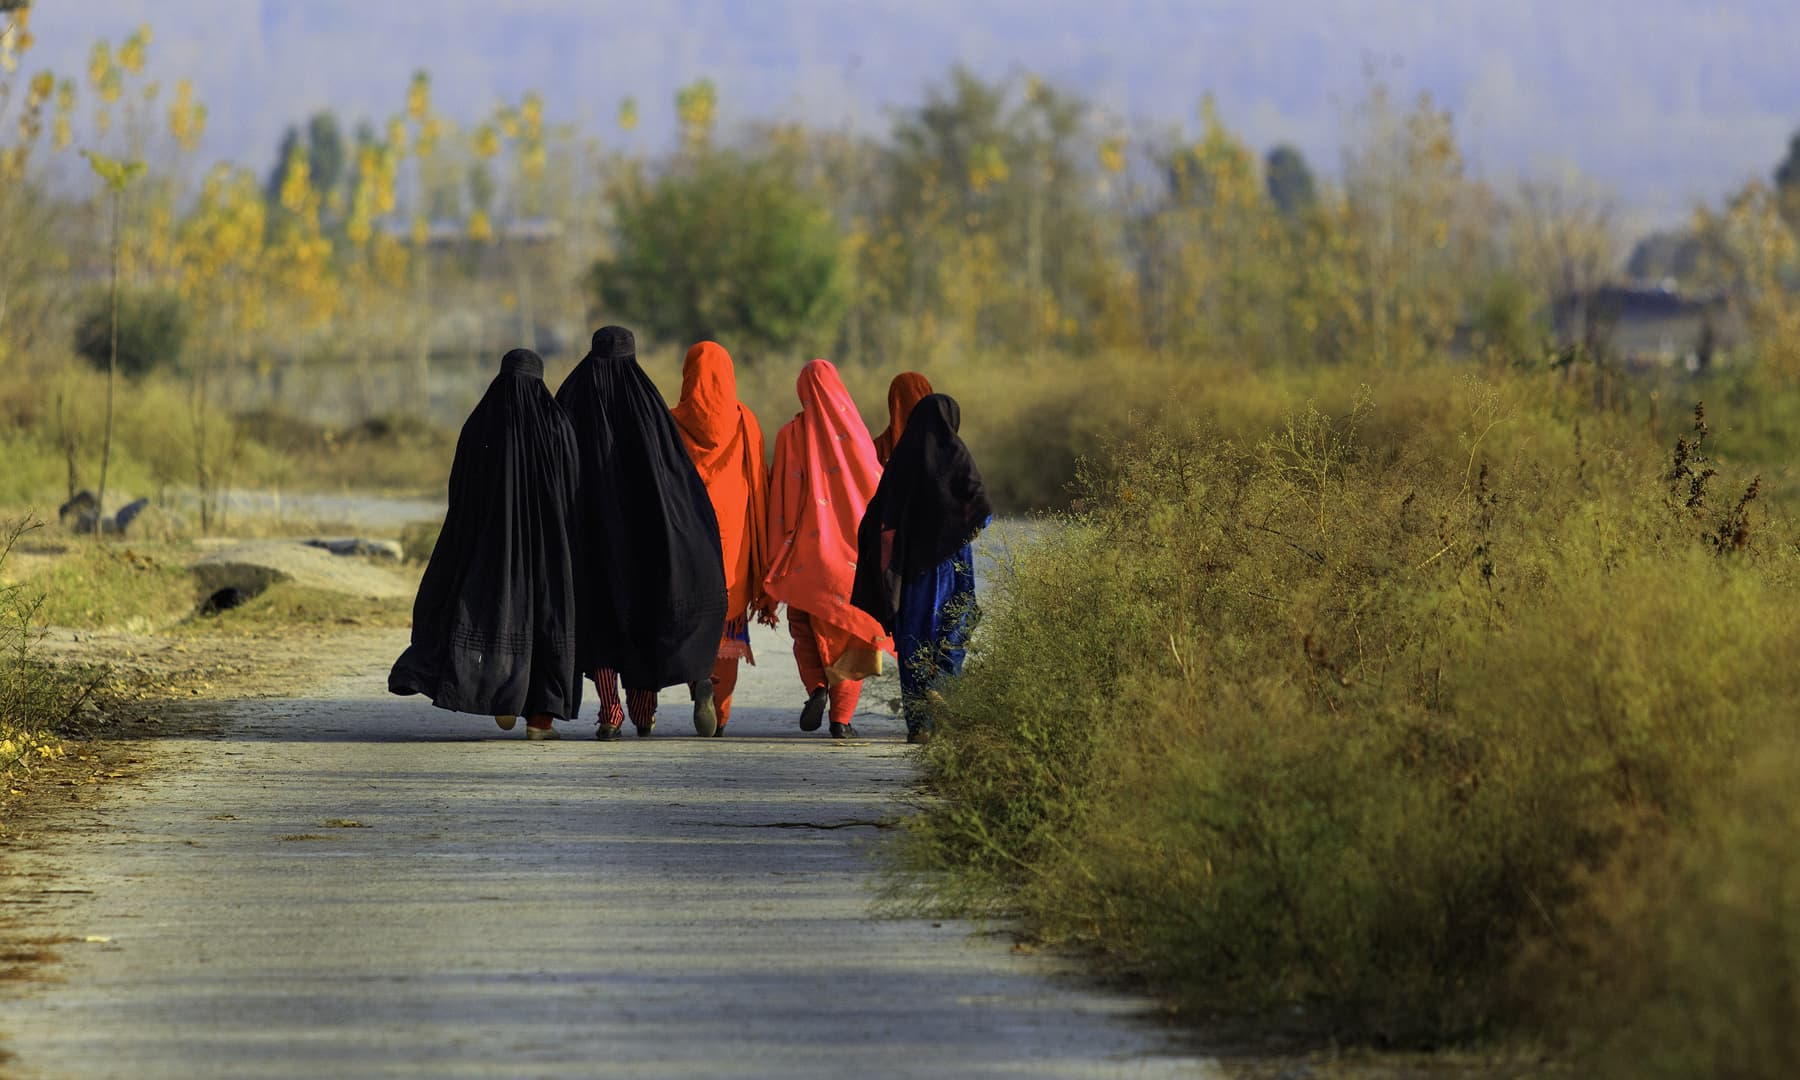 Women walking home.